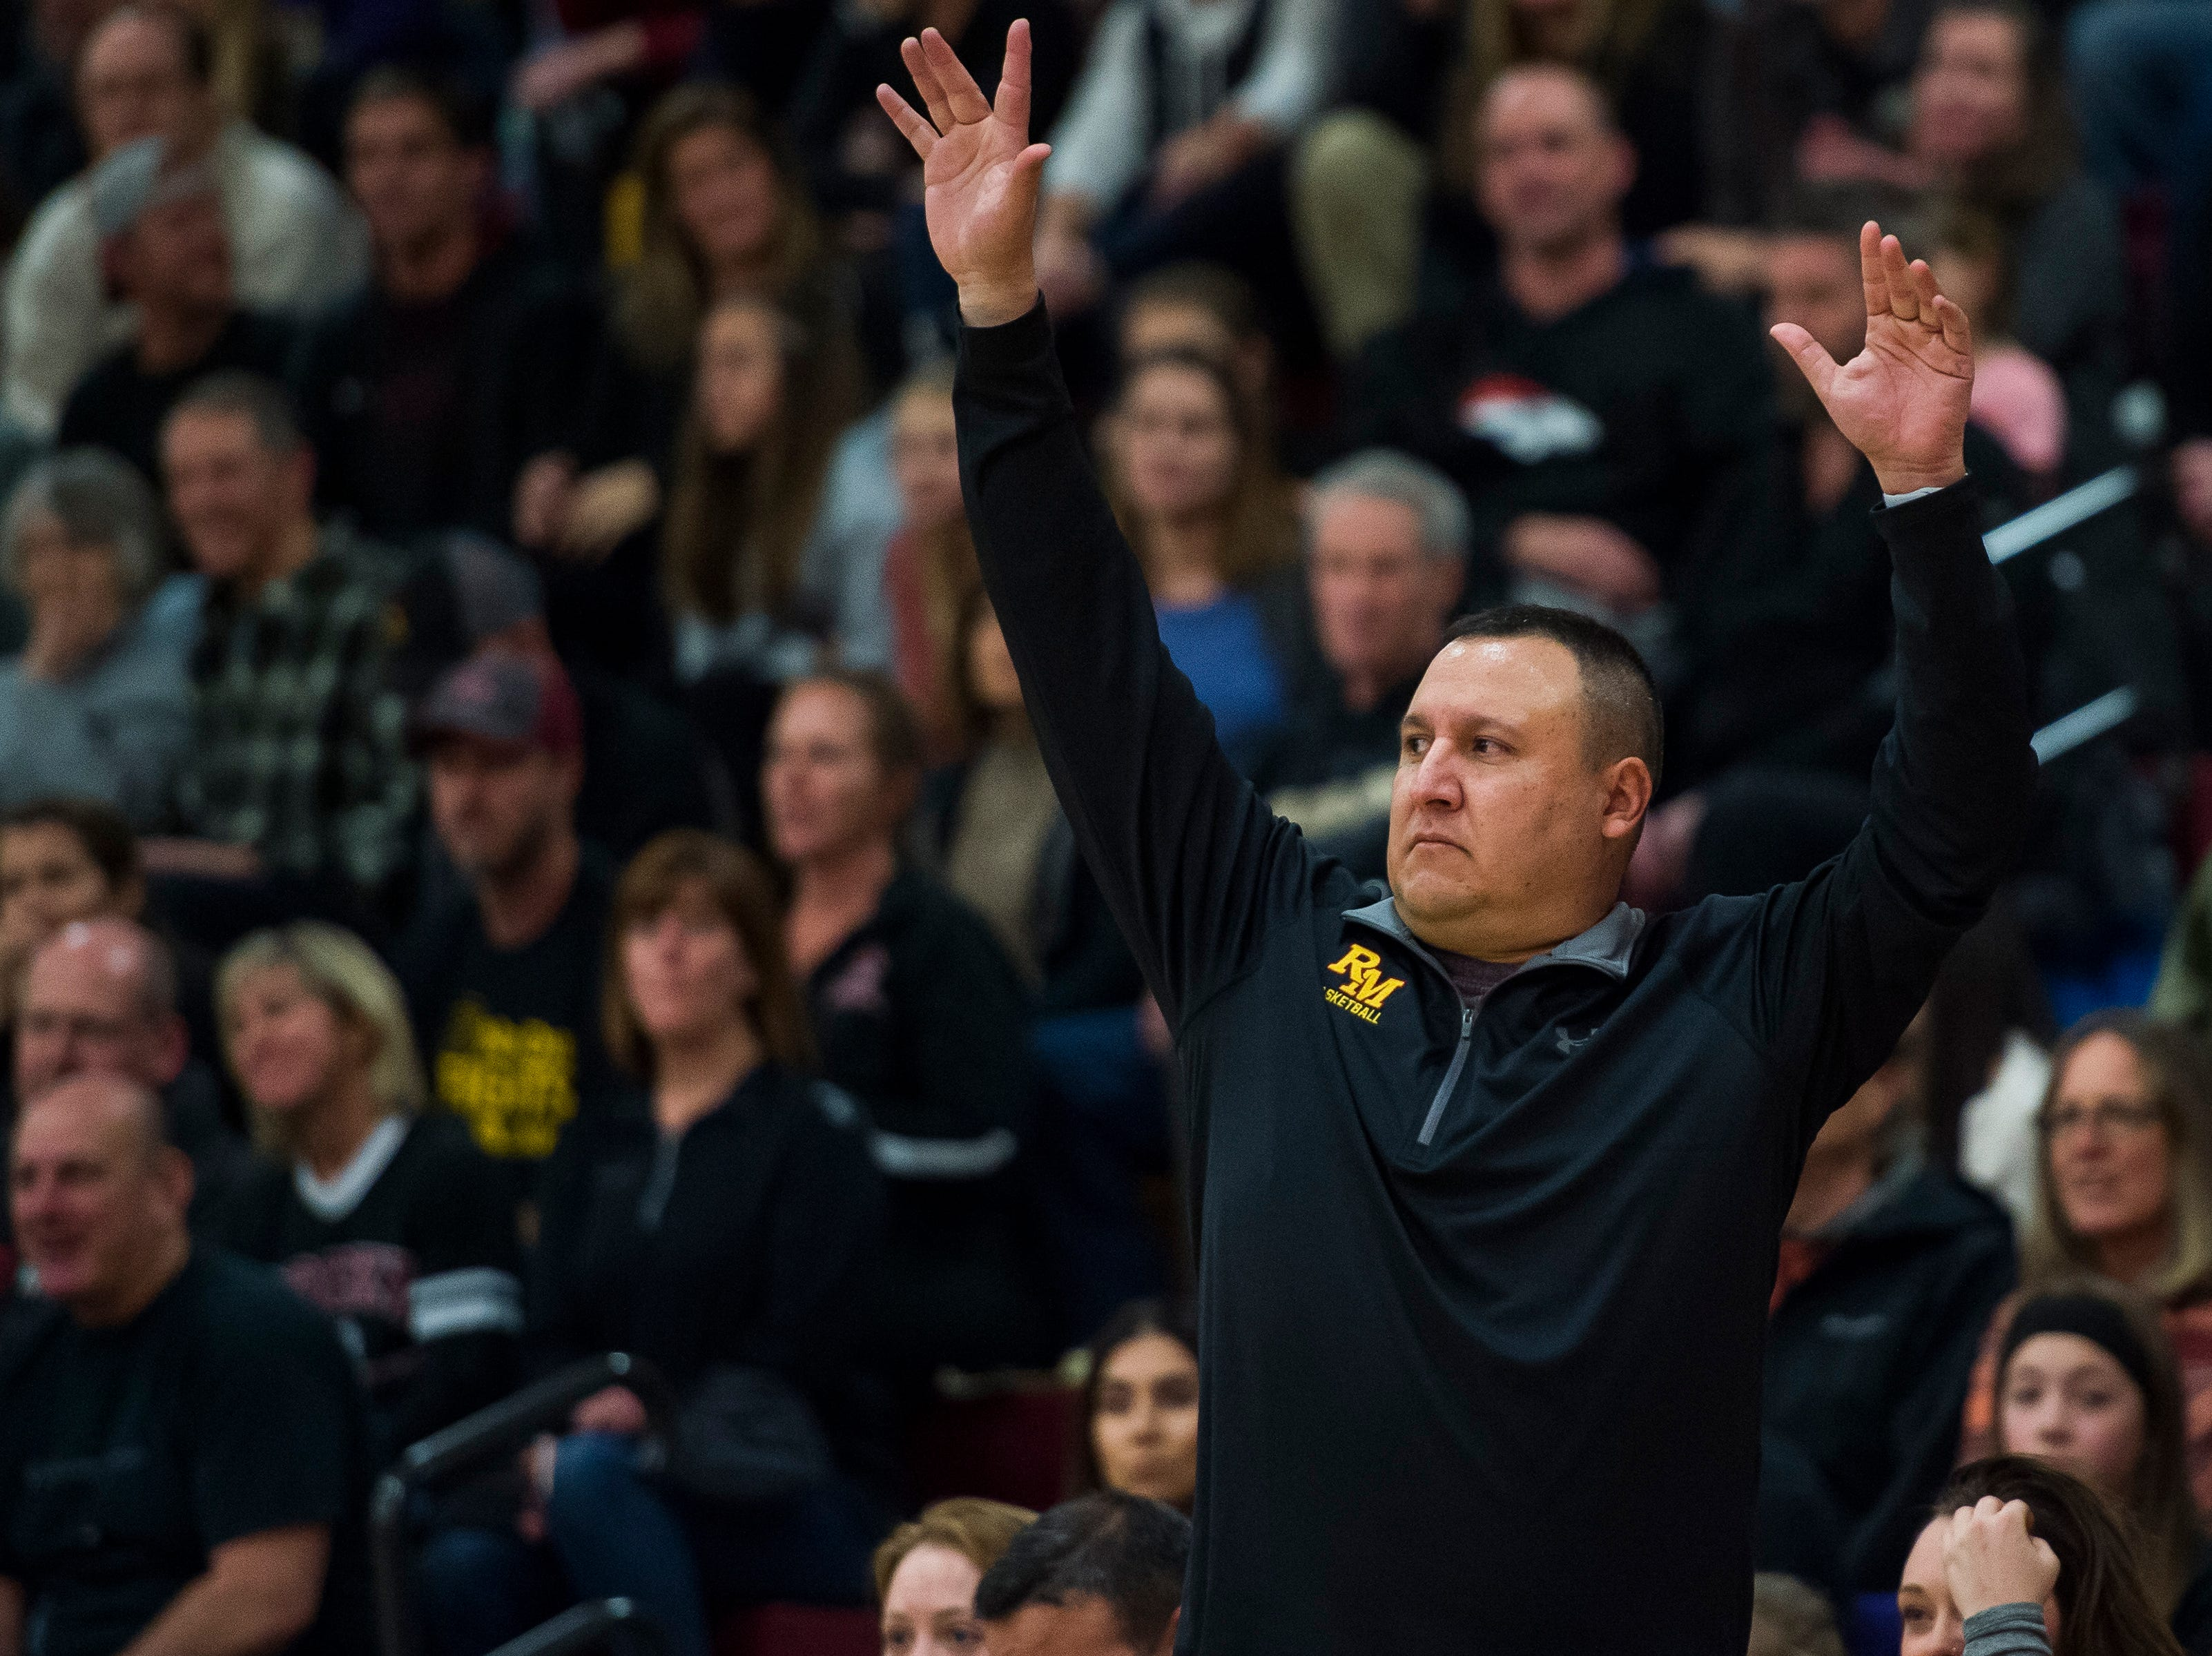 Rocky Mountain High School head girls basketball coach Justin Vallejo gives good vibes while a player attempts a free throw during a game against Fort Collins High School on Friday, Jan. 18, 2019, at Rocky Mountain High School in Fort Collins, Colo.